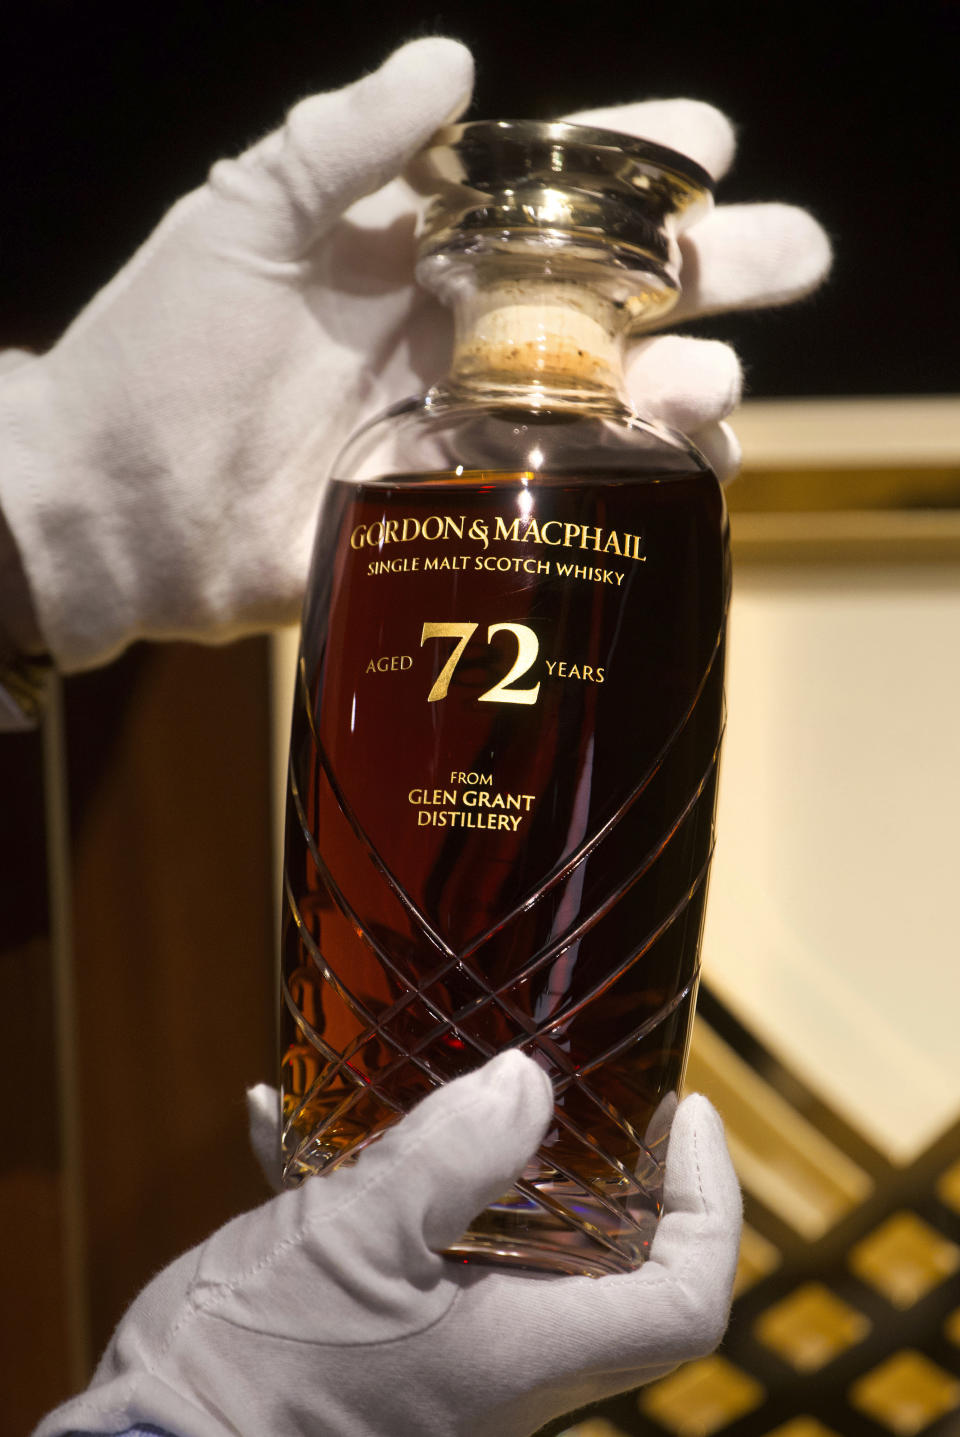 Expecting to fetch up to US$49,000 at auction, a 72-year-old bottle of Glen Grant single malt whisky from Scotland is displayed at a Bonhams auction preview in Hong Kong, Thursday, Jan. 28, 2021. Despite the economic uncertainty brought on by the pandemic, interest in the rare whisky remains high. Compared to other investment commodities, collectable whisky is doing strong in the past 10 years, with a four-fold increase in its price, Bonhams specialist Christopher Pong said. (AP Photo/Vincent Yu)